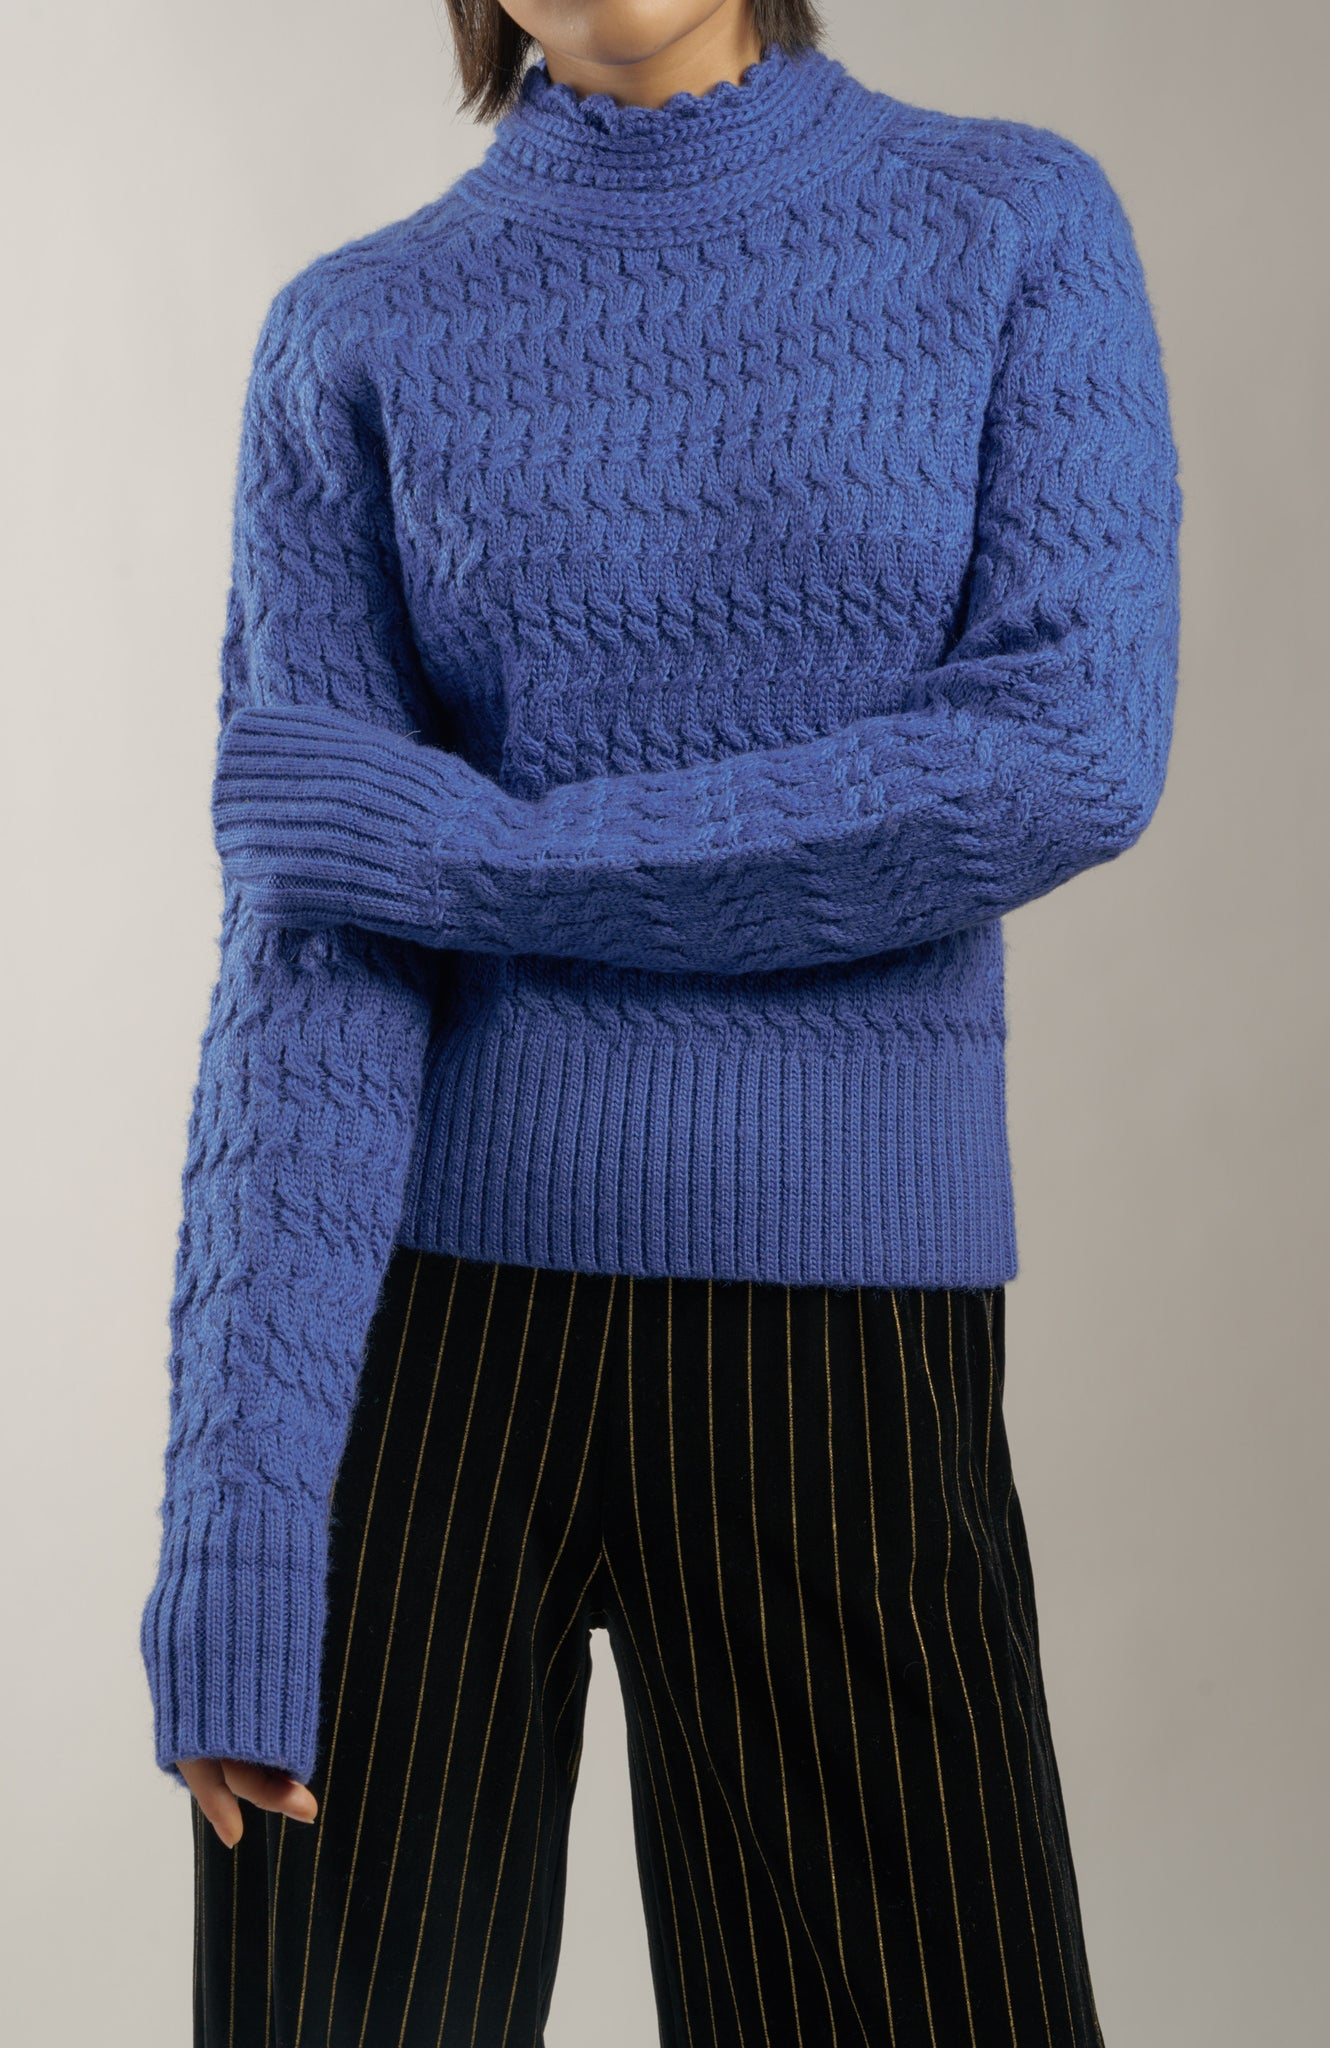 The 'Dyer' Rollneck in Cobalt Blue